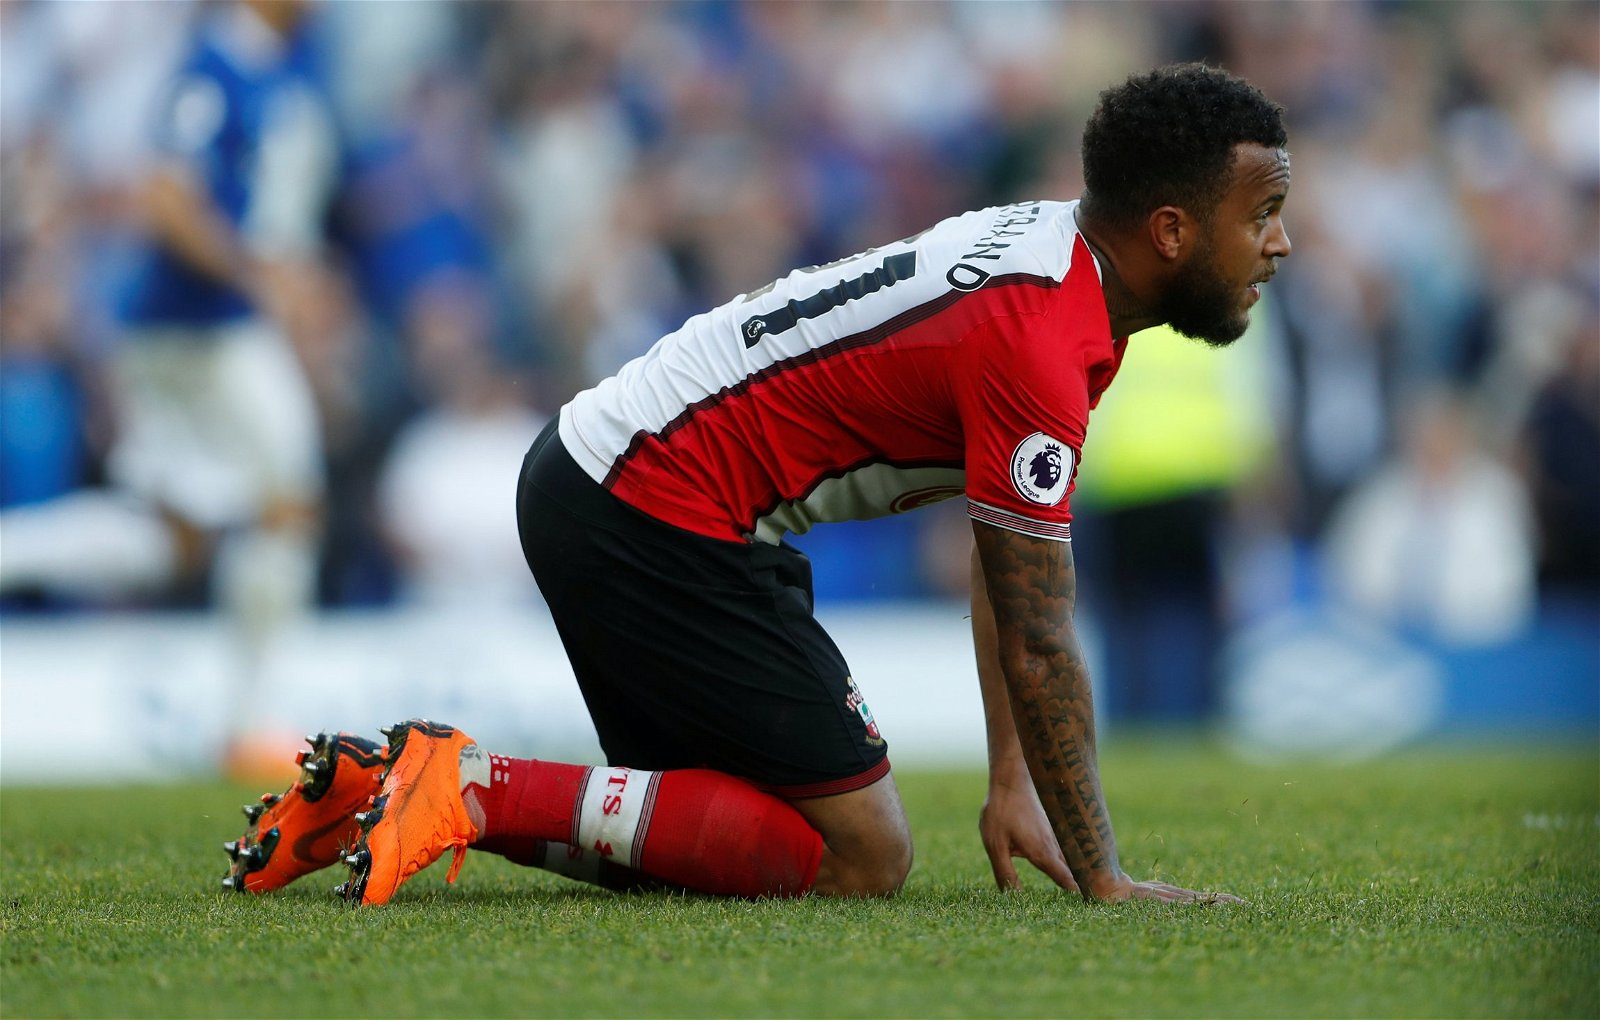 Ryan Bertrand looks dejected after Southampton concede a goal